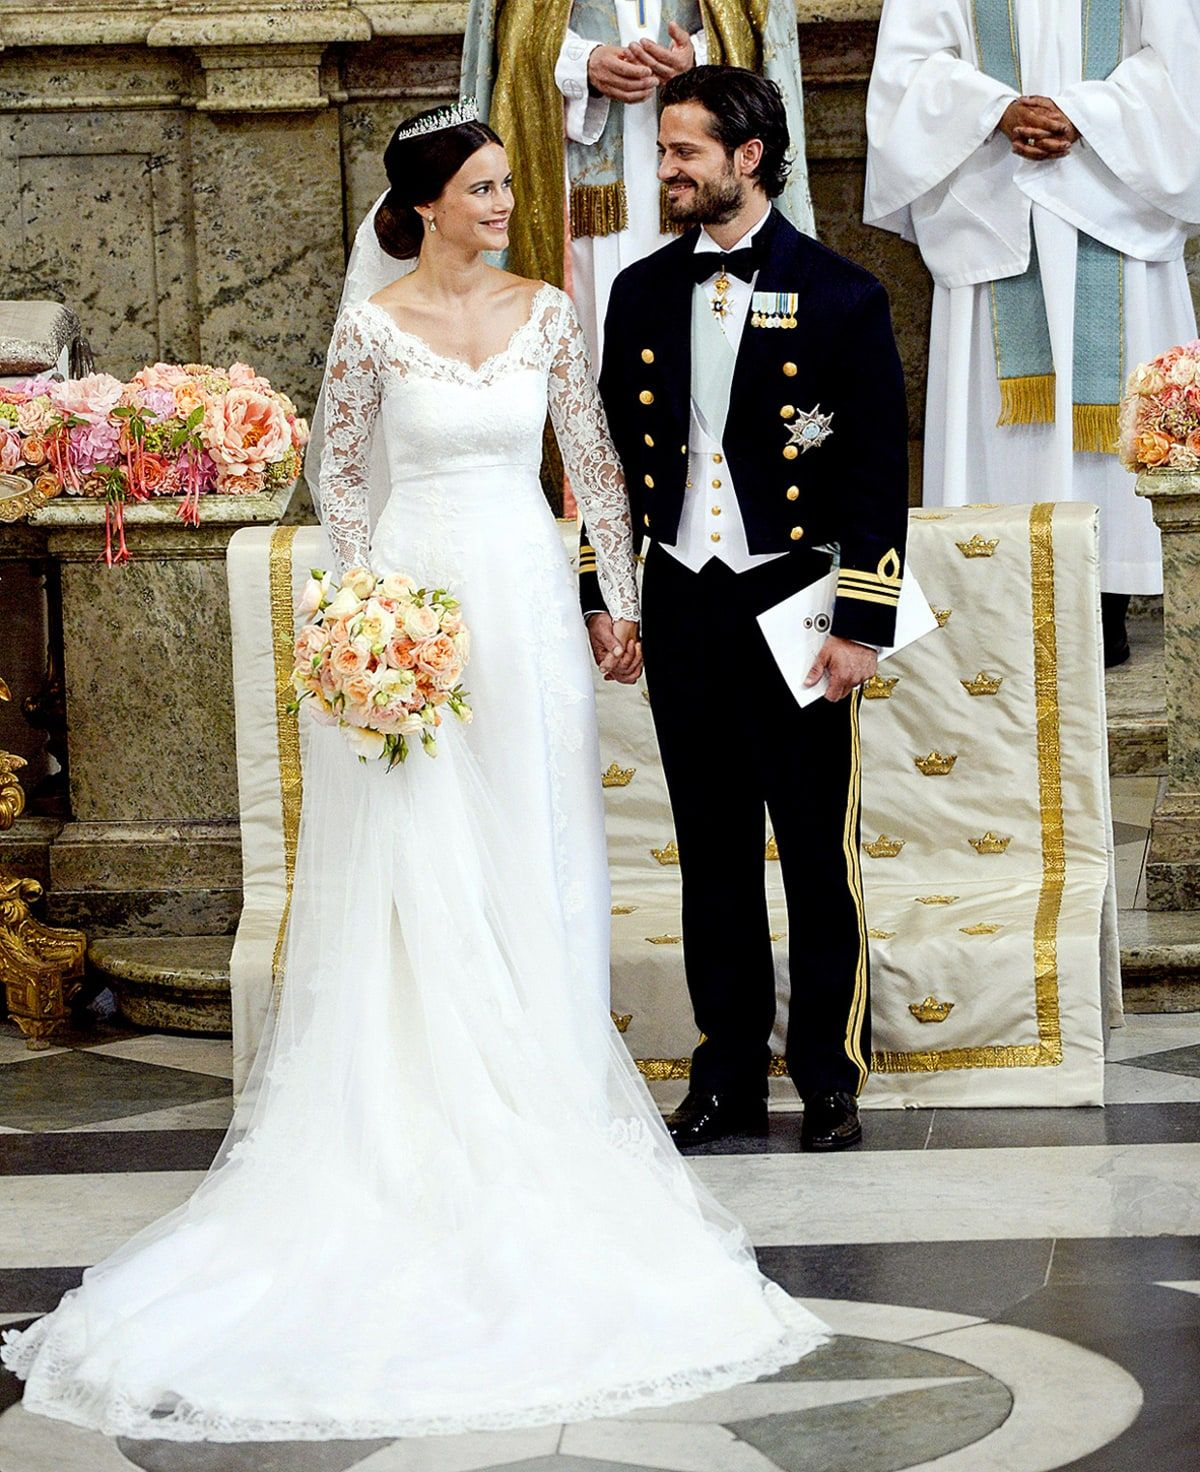 The Most Amazing Royal Wedding Dresses Ever Royal Wedding Dress Royal Weddings Wedding Dresses [ 1472 x 1200 Pixel ]